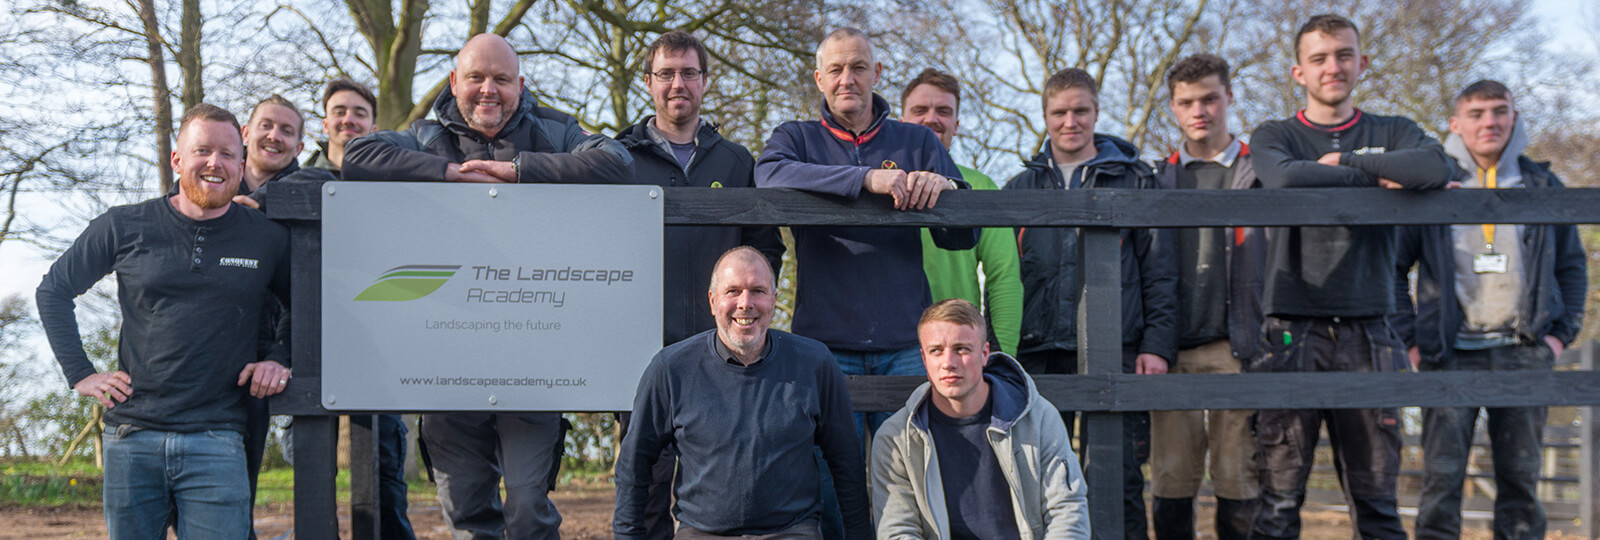 Landscape Academy team shot in colour